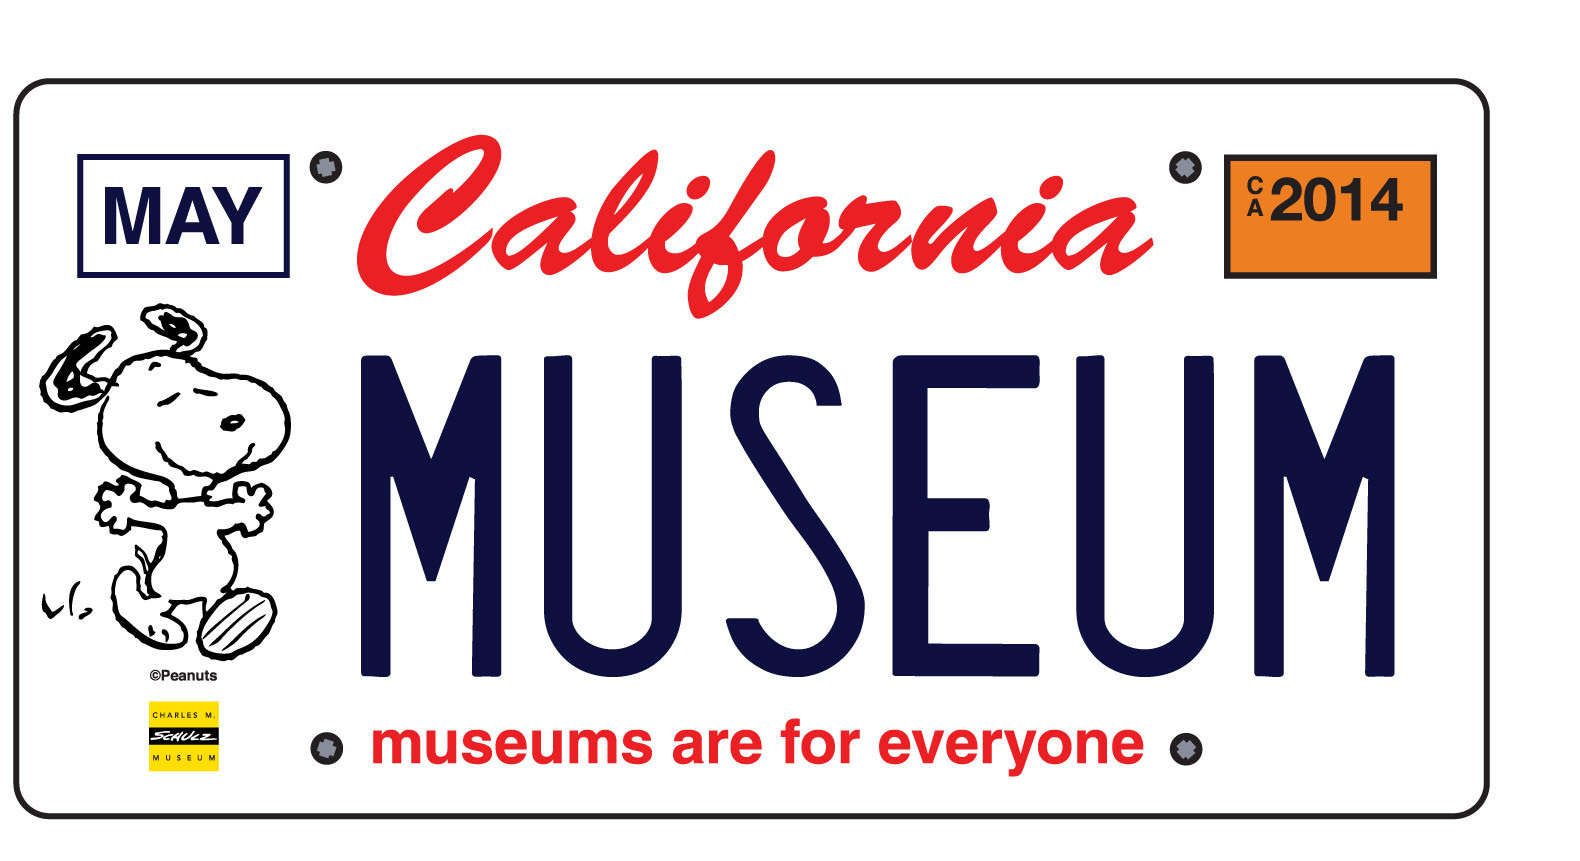 California Legislature Recognizes Museums, Snoopy License Plate to Fund Museums